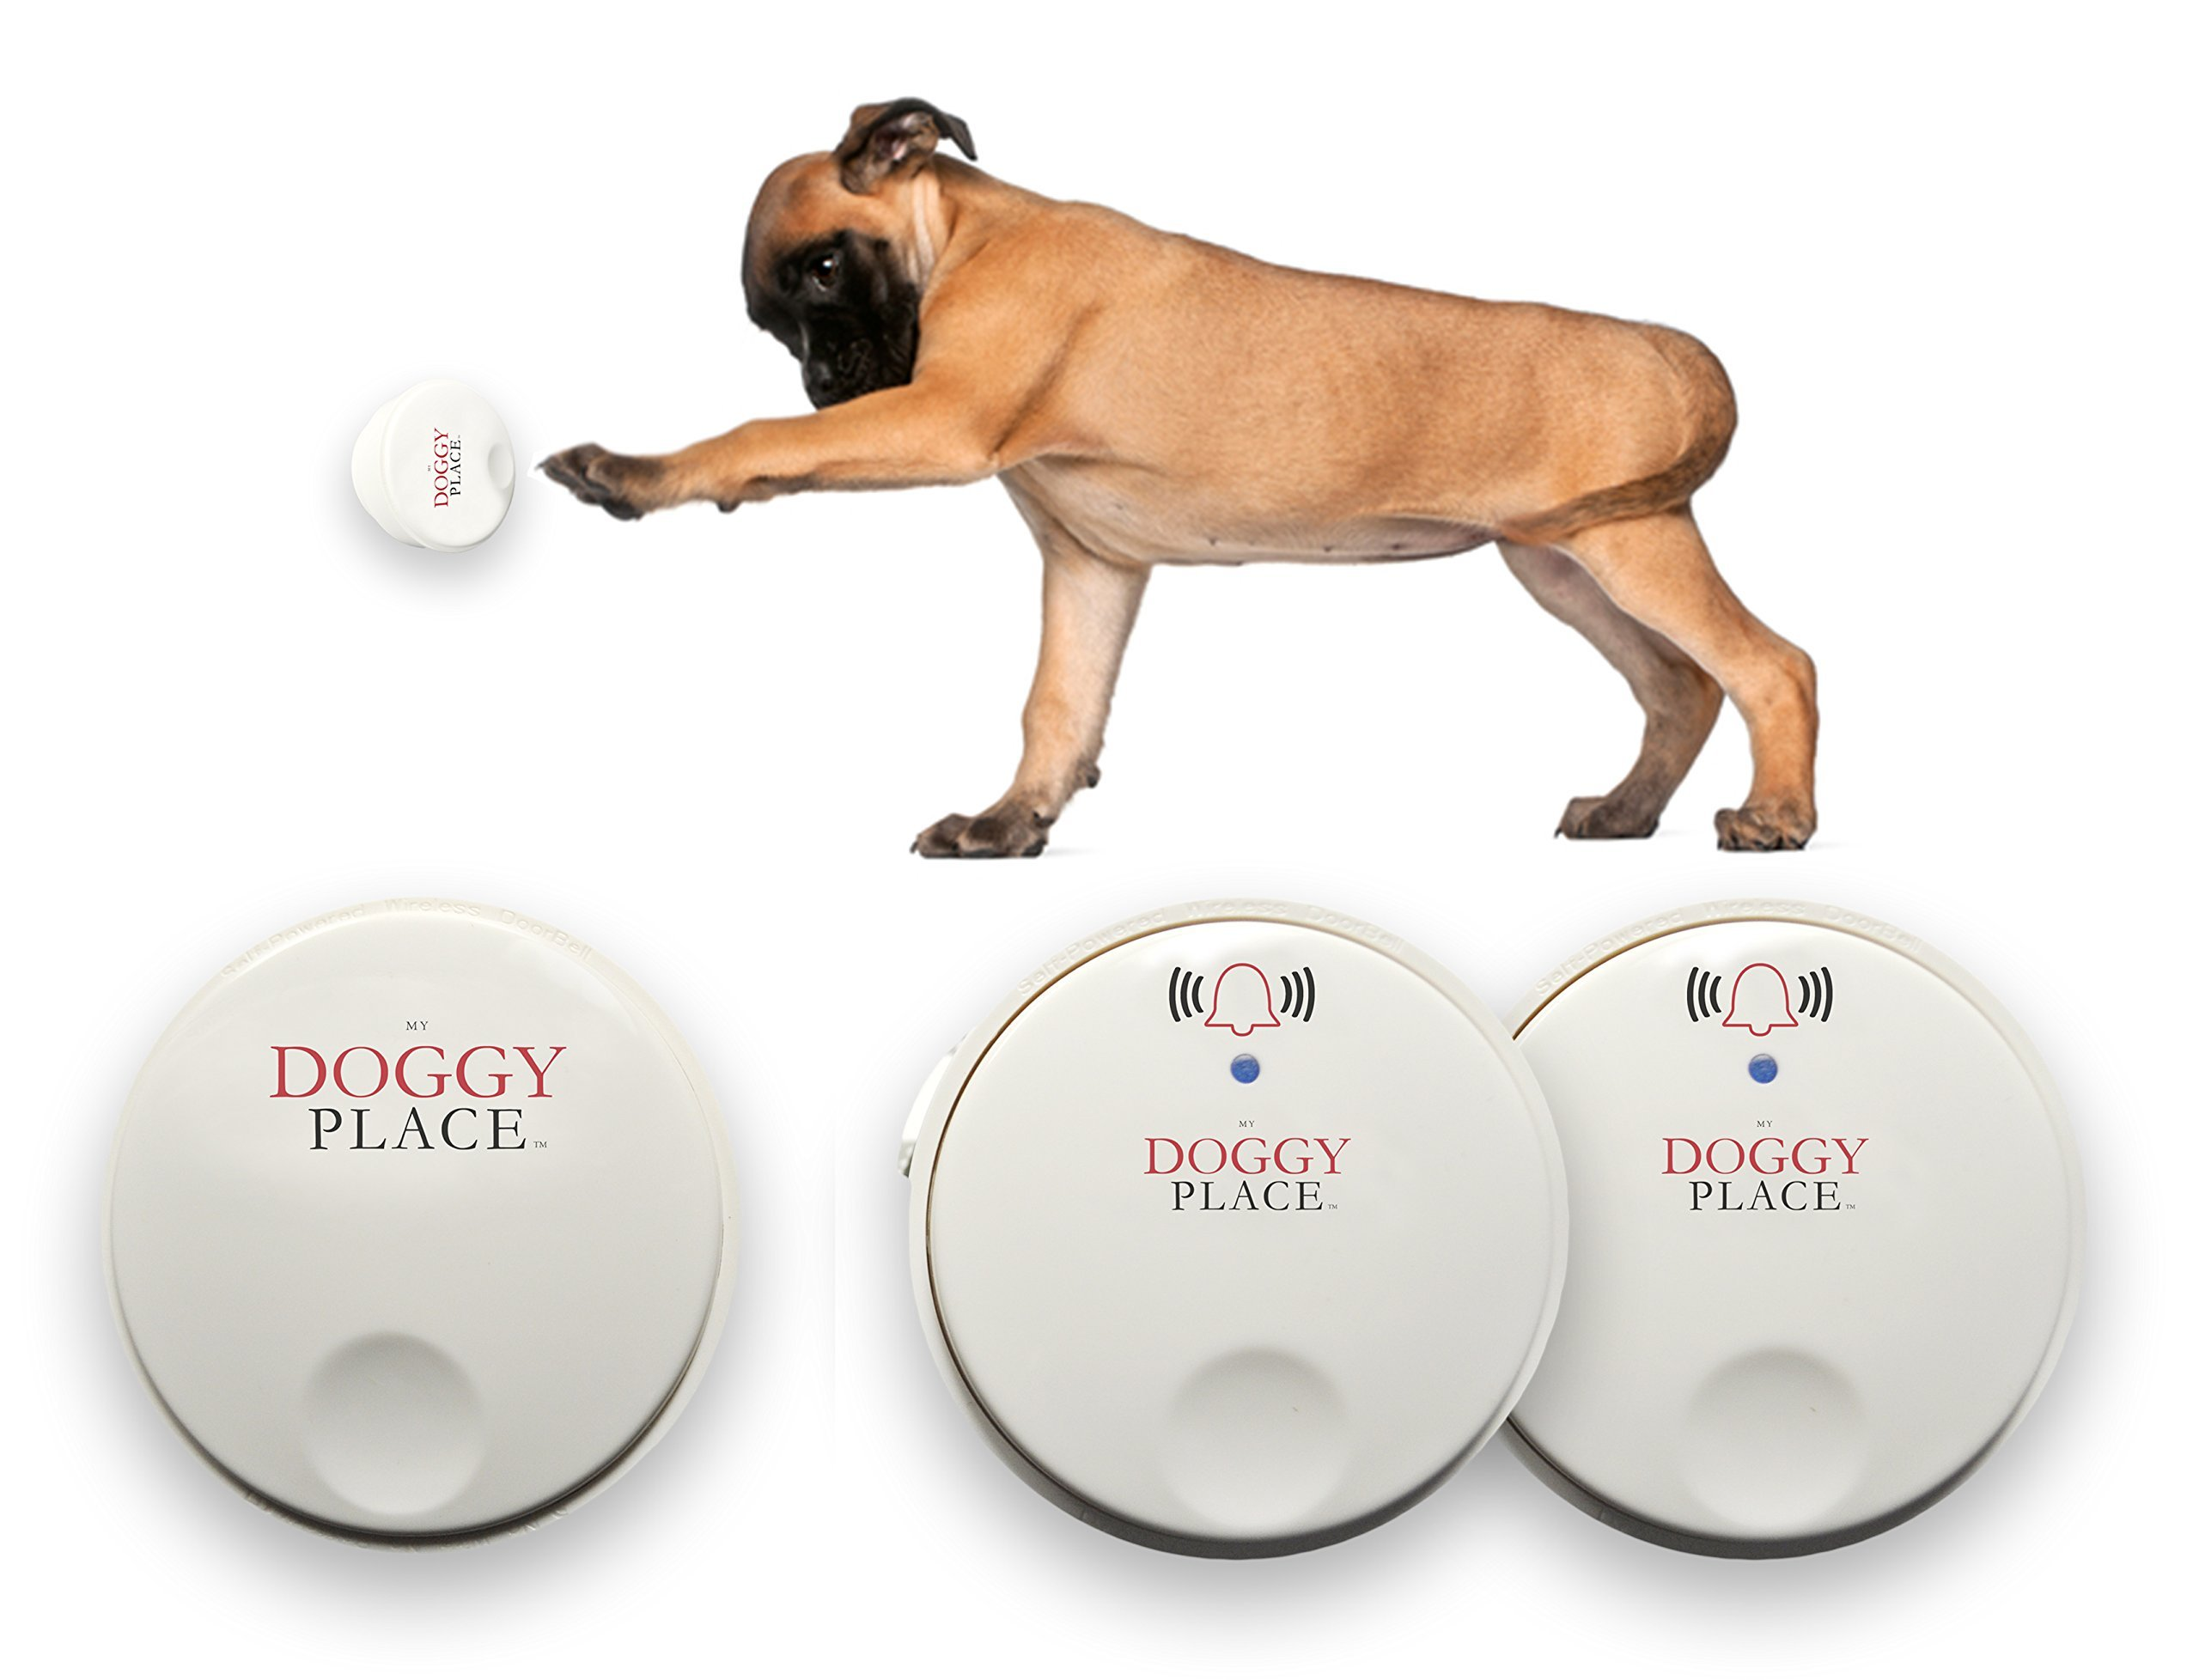 My Doggy Place - Dog Pet Children Toddler, Wireless Doorbell, No Batteries Required, Electronic Chime Bell, Potty Training, for Small, Medium, Large Dogs (Two Transmitters - One Receiver) by My Doggy Place